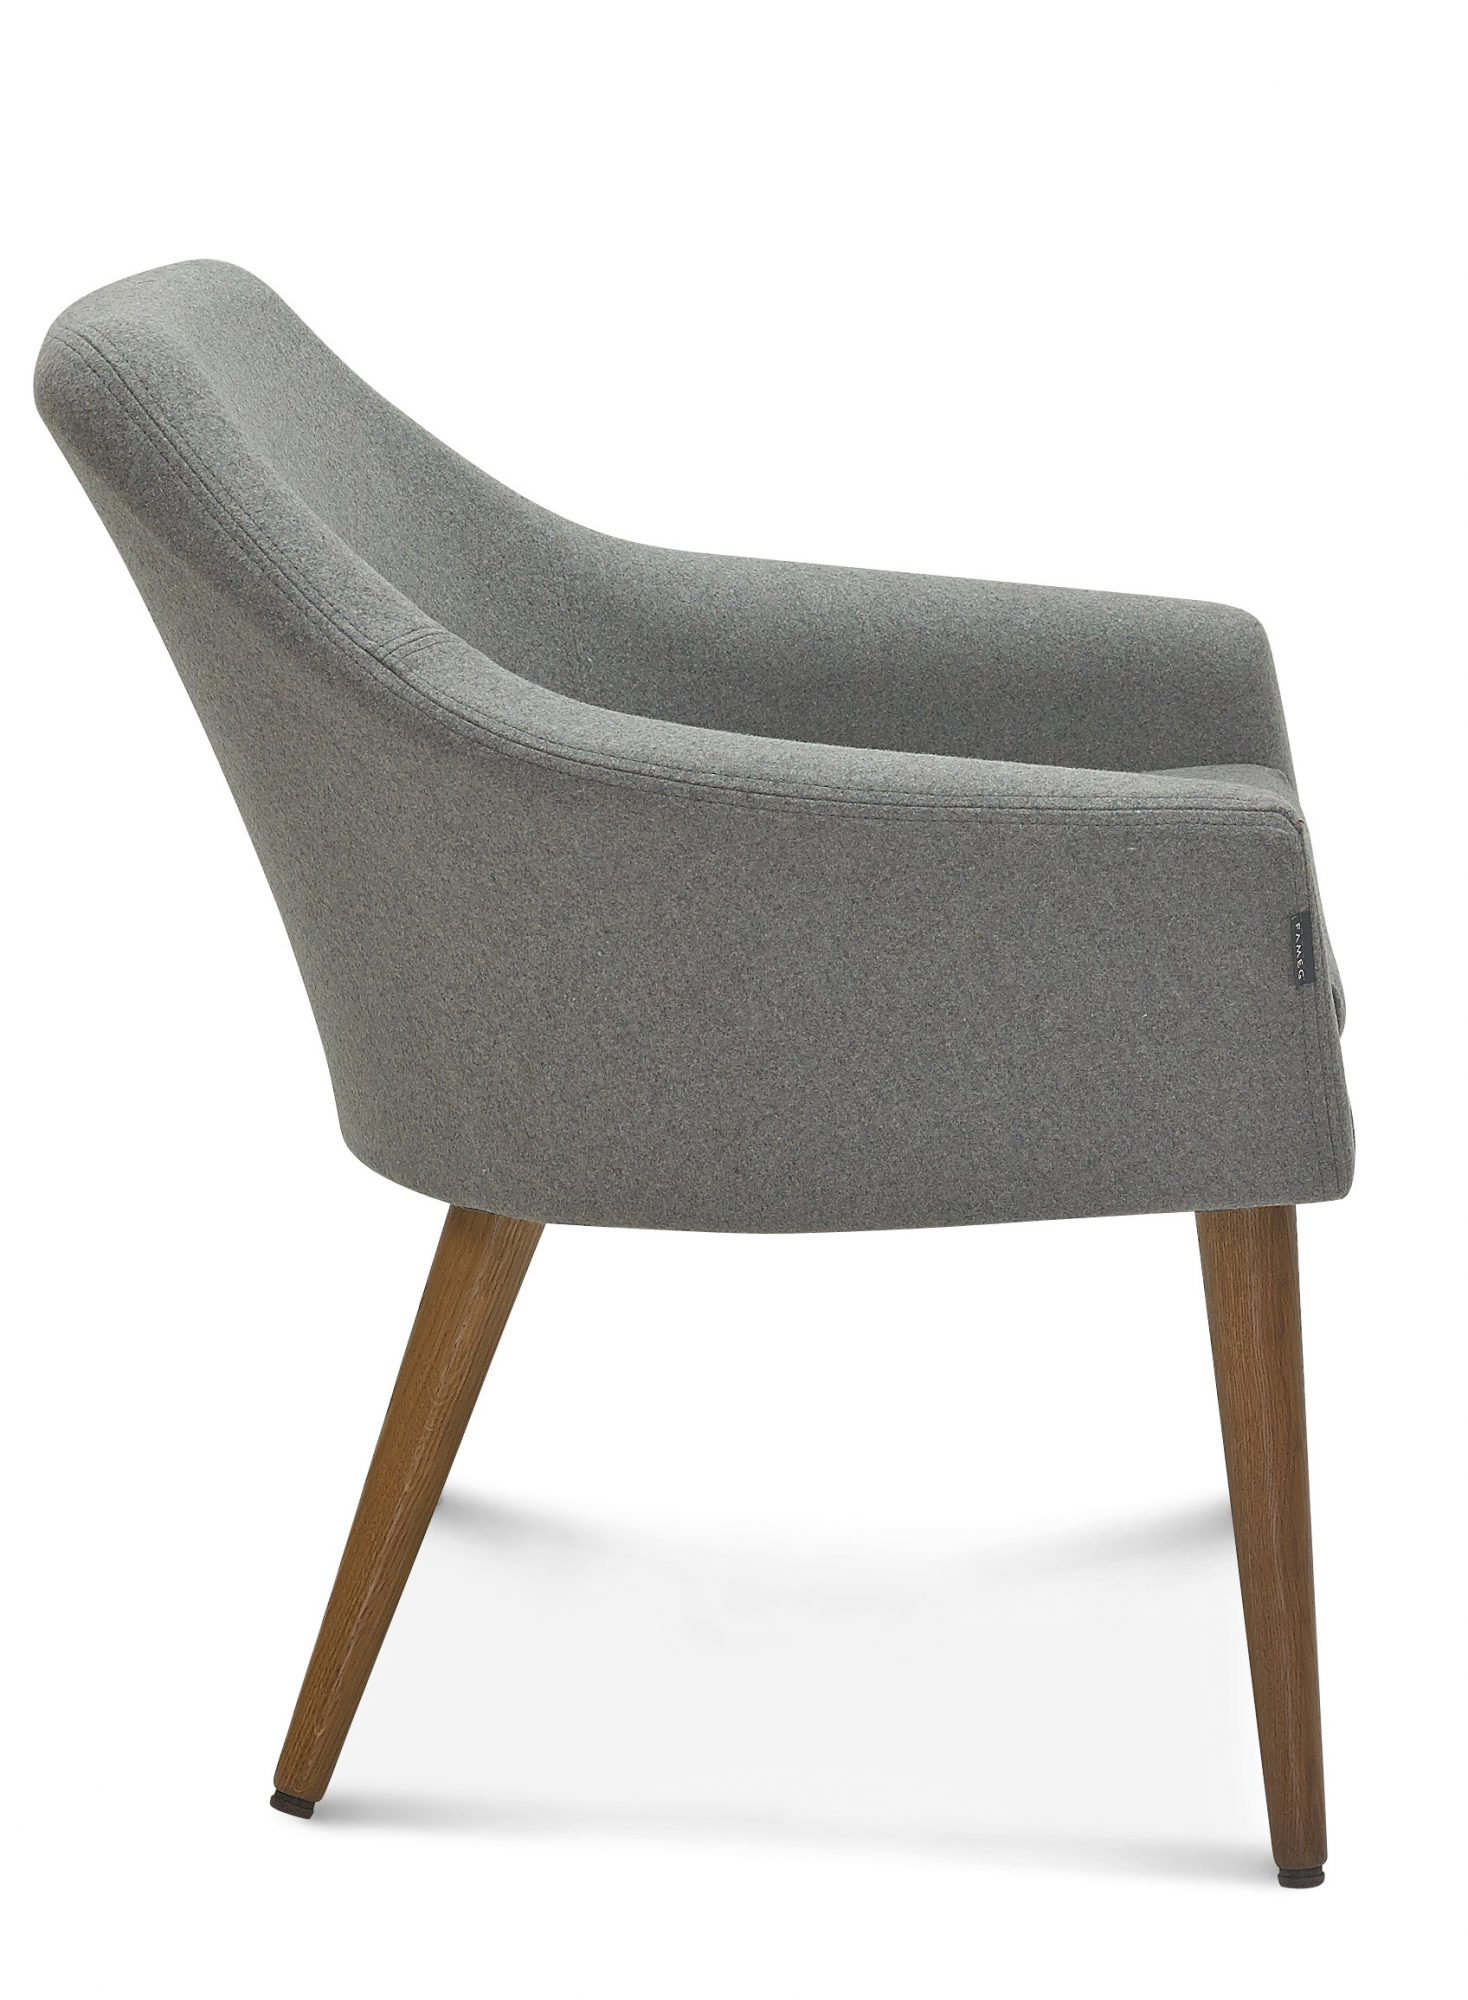 fort Lounge Chair Telegraph Contract Furniture